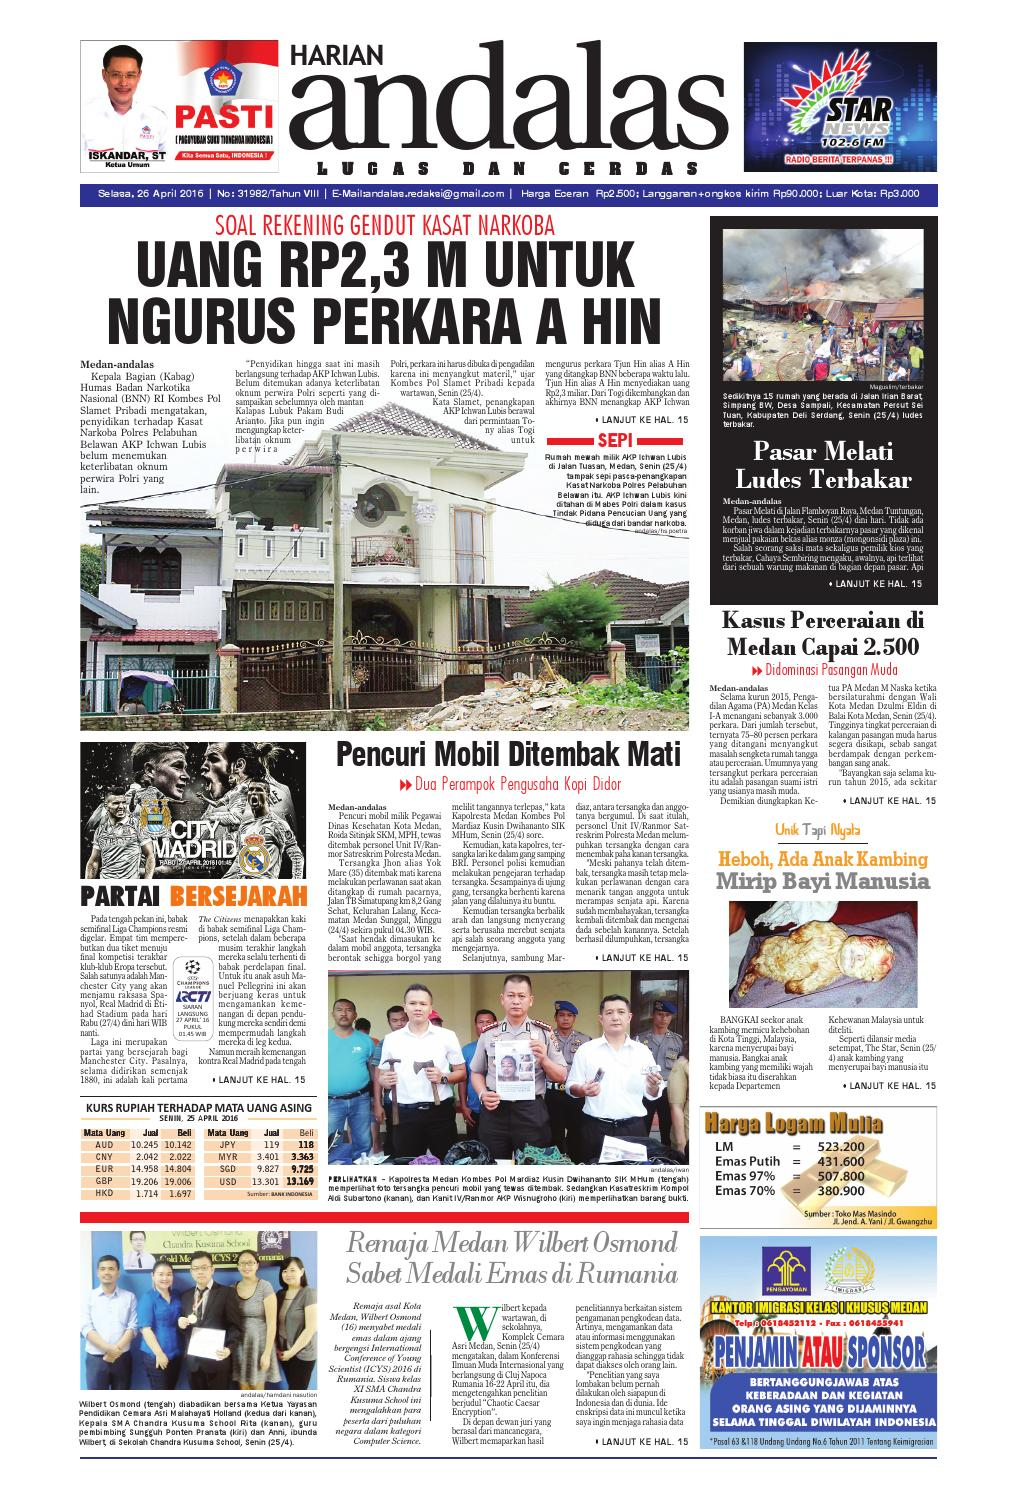 Epaper Andalas Edisi Selasa 26 April 2016 By Media Andalas Issuu